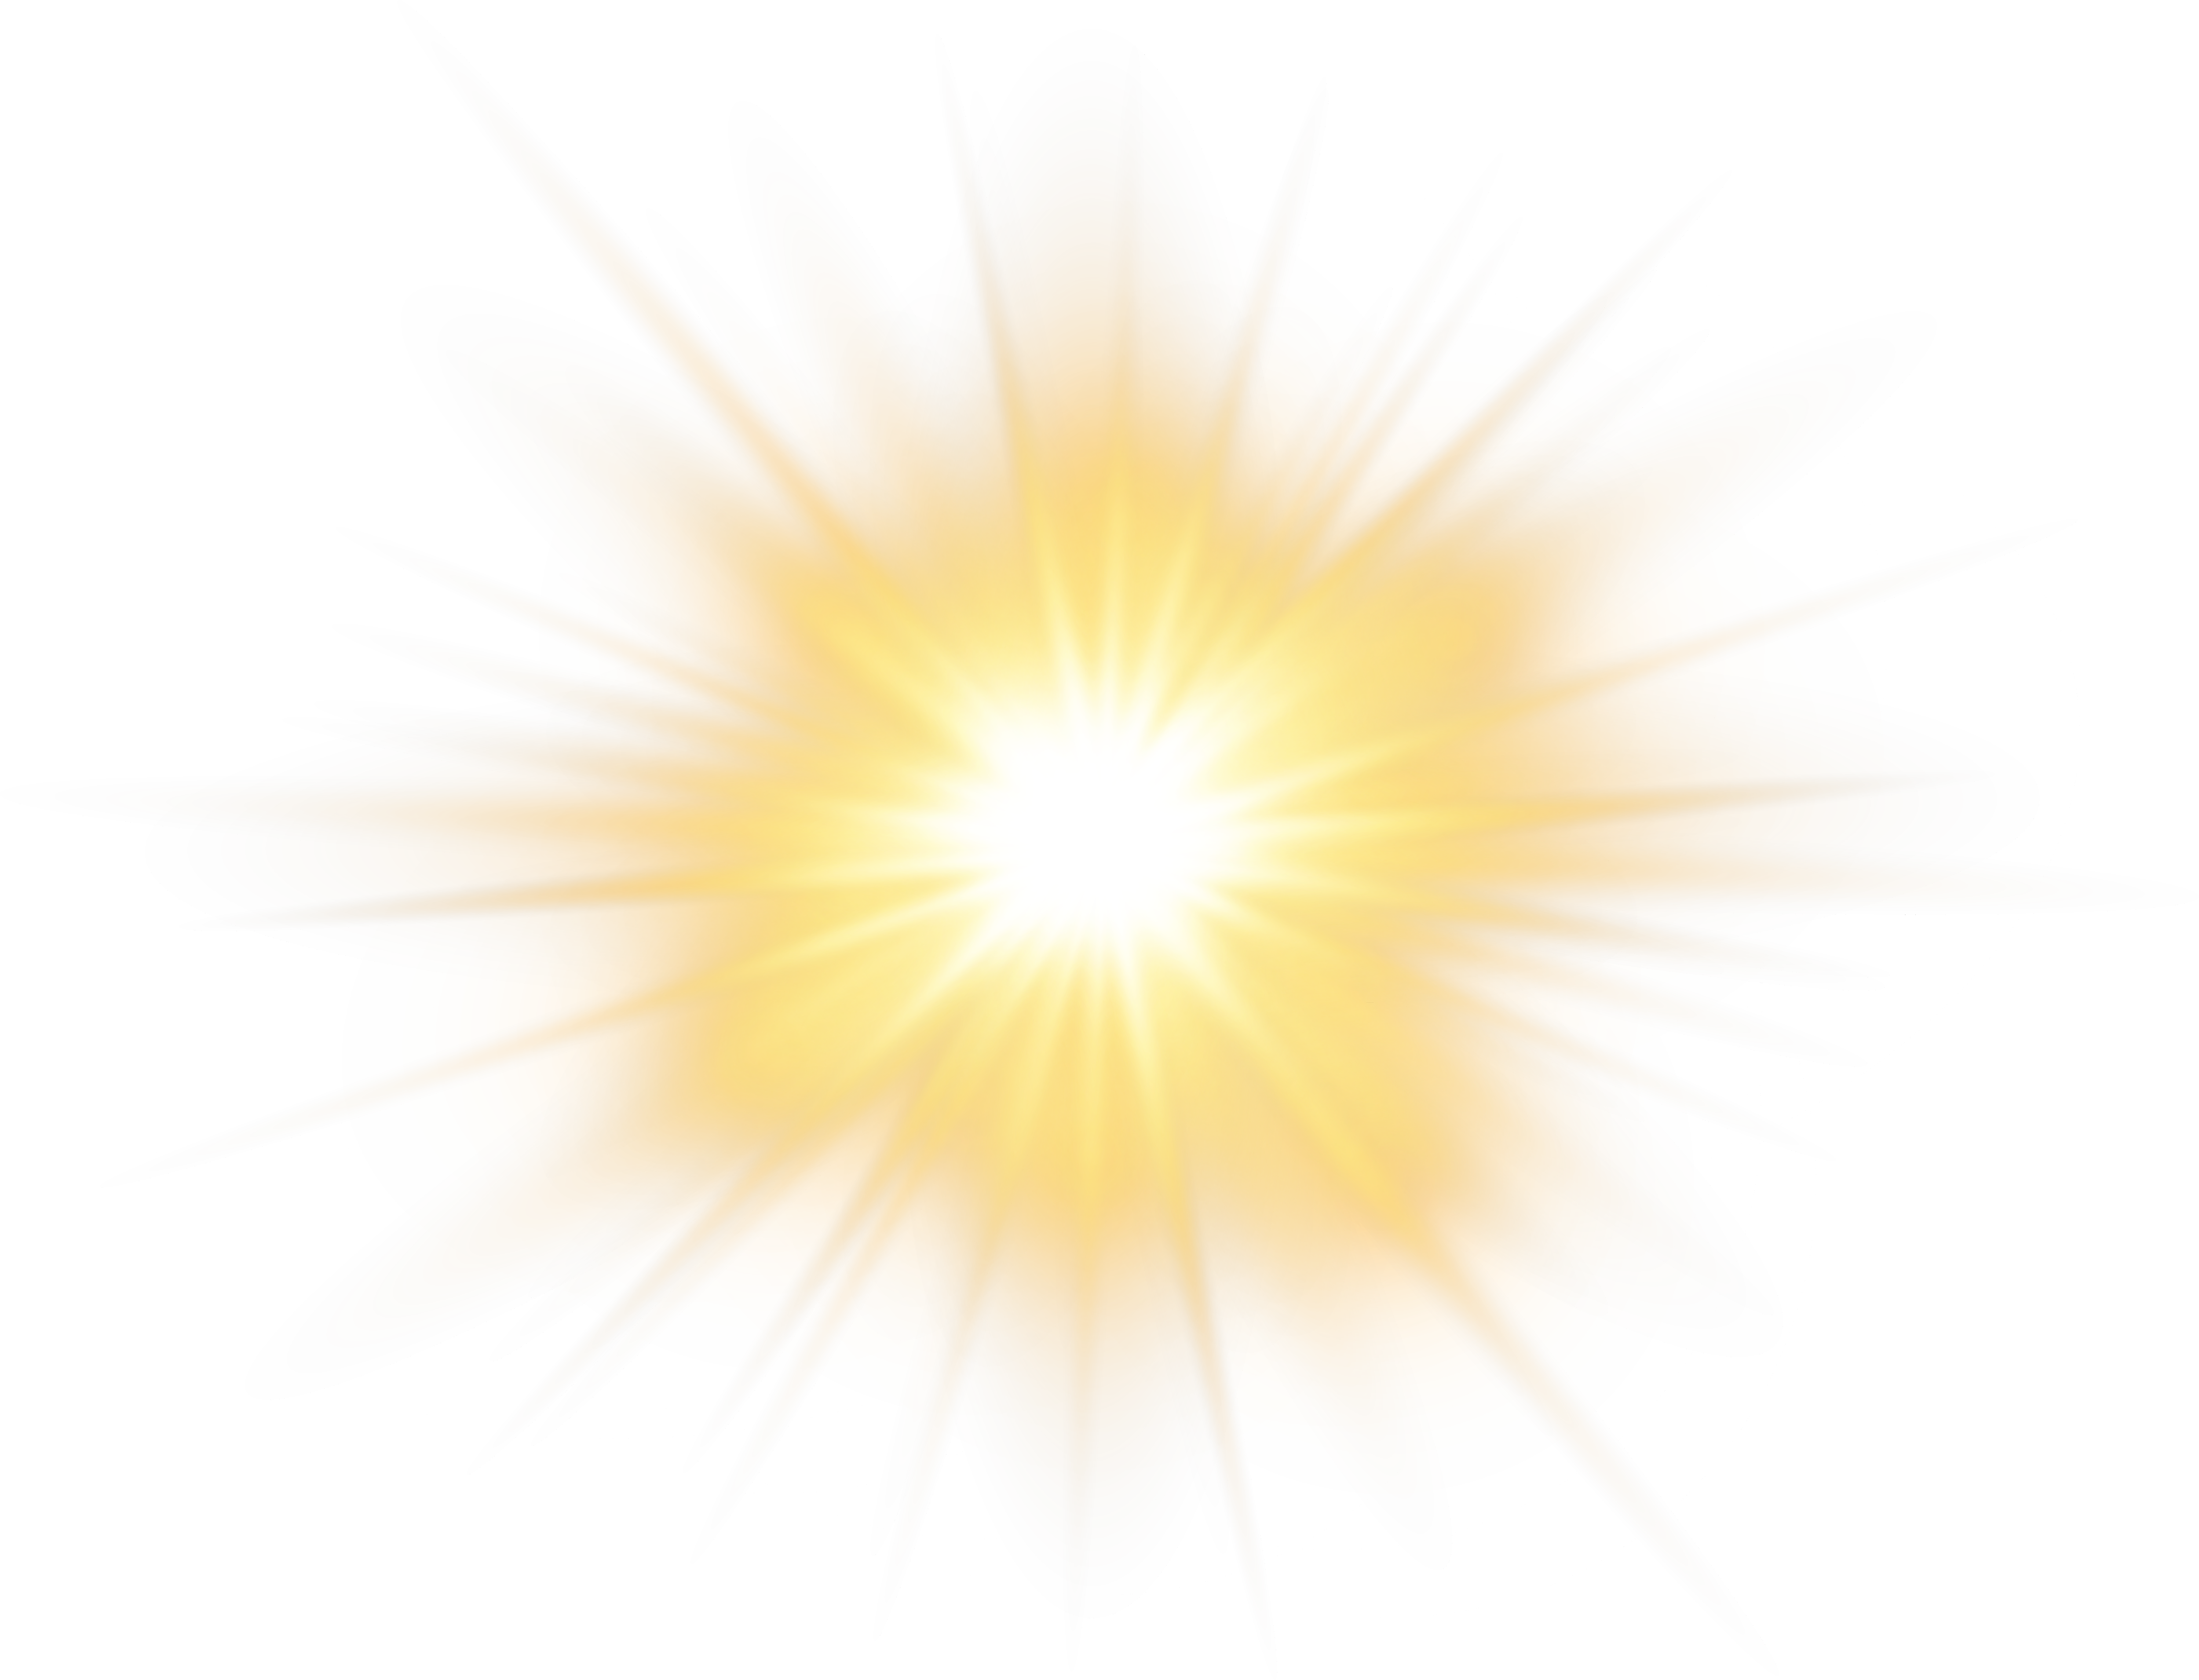 Pattern Sky Effect Yellow Sunlight Sun Transparent PNG Image